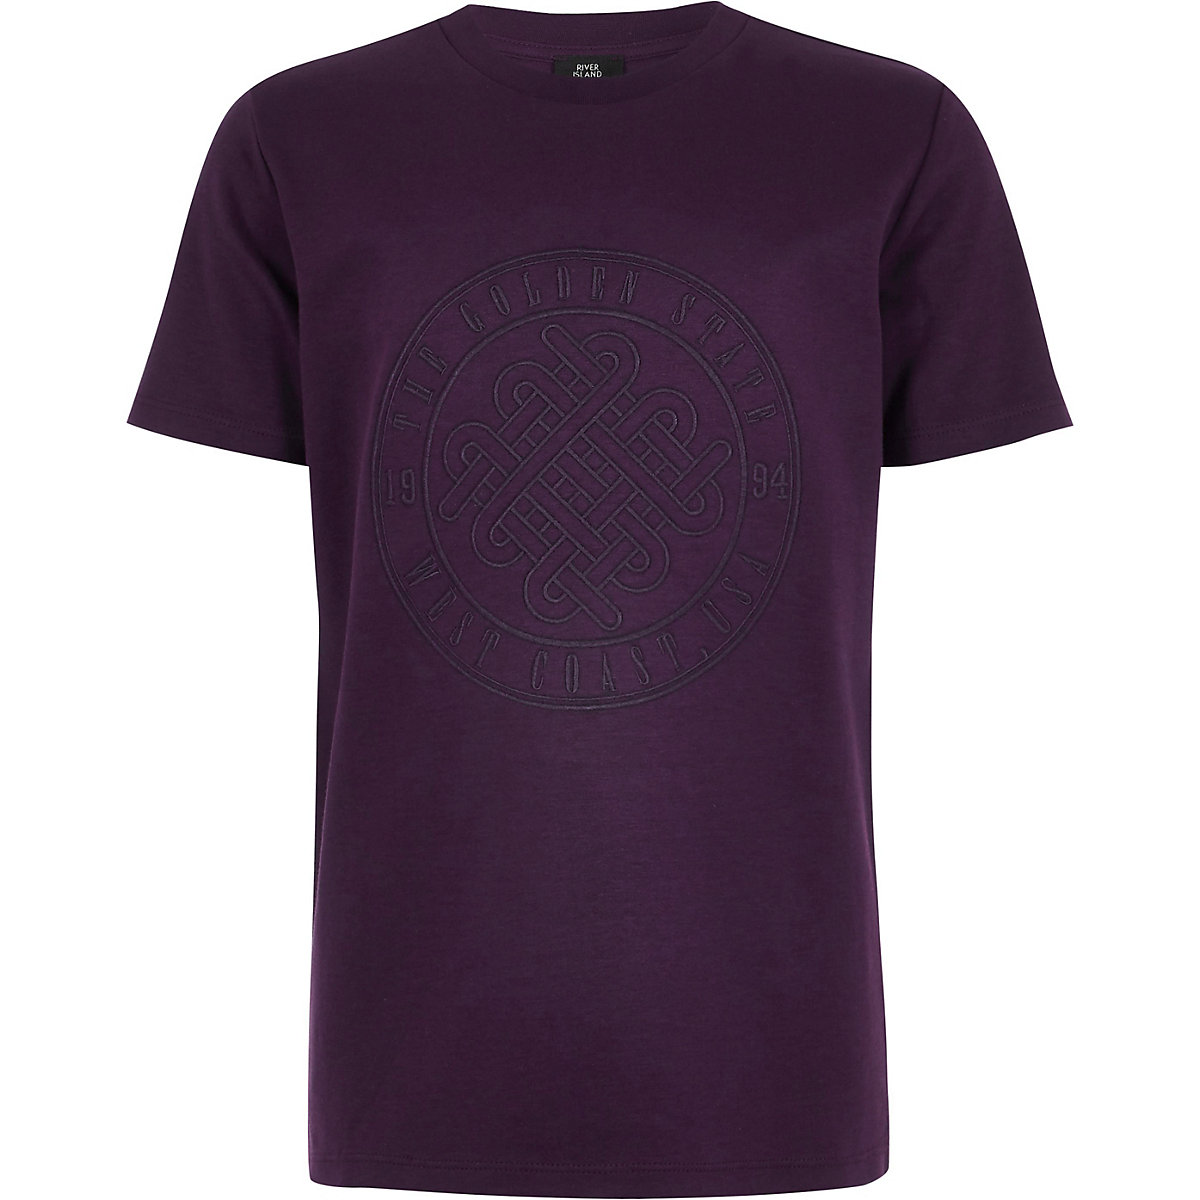 Boys purple 'Golden state' T-shirt